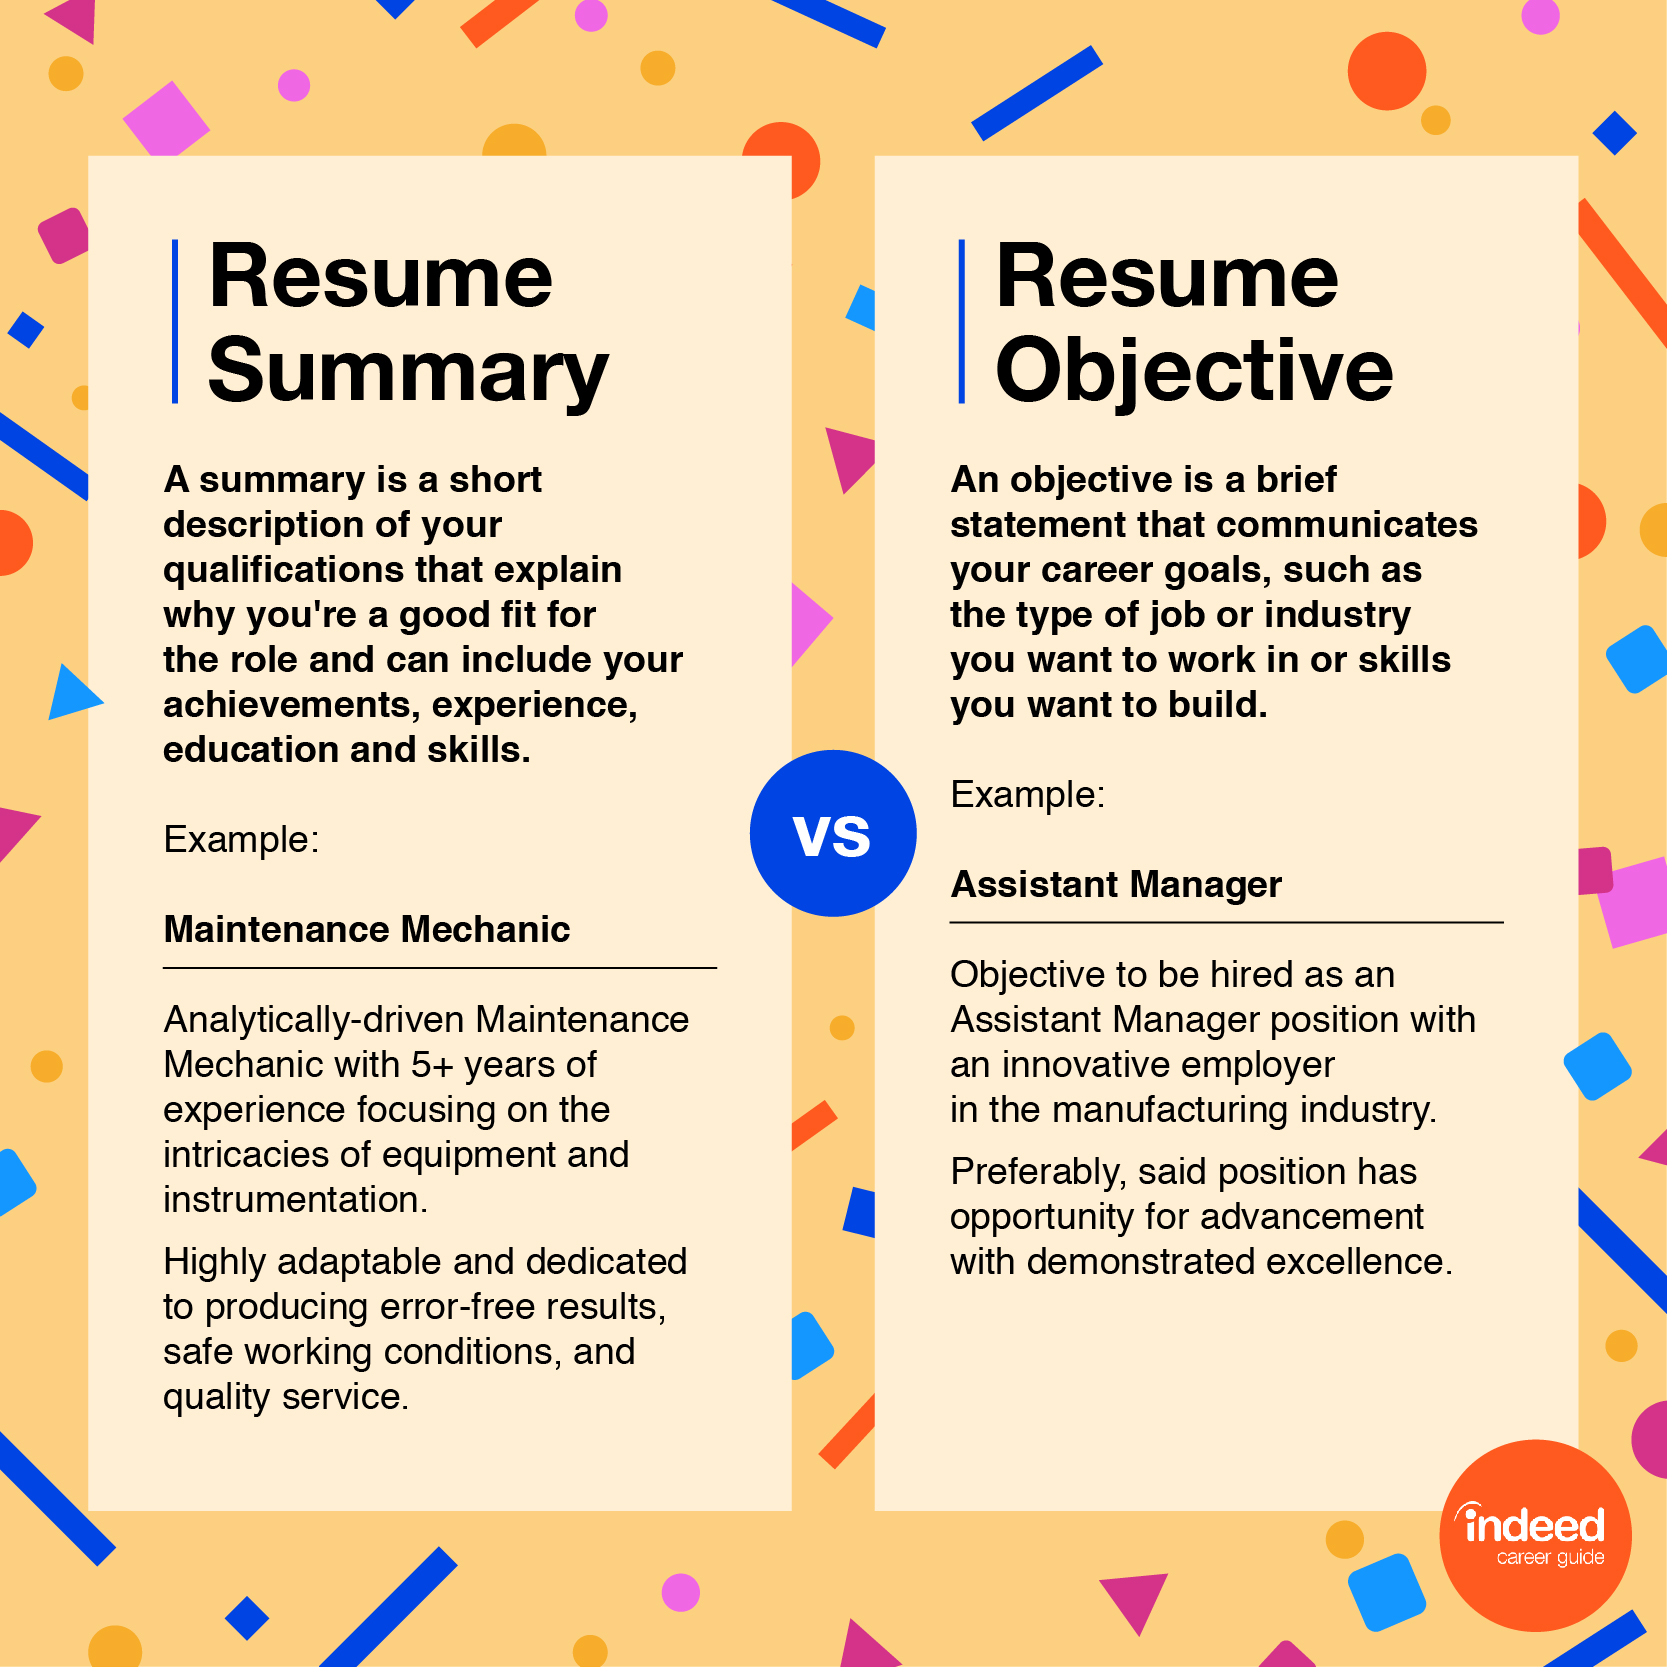 indeedcom resume summary guide examples customer service sample indeed v4 email for Resume Customer Service Resume Sample Indeed